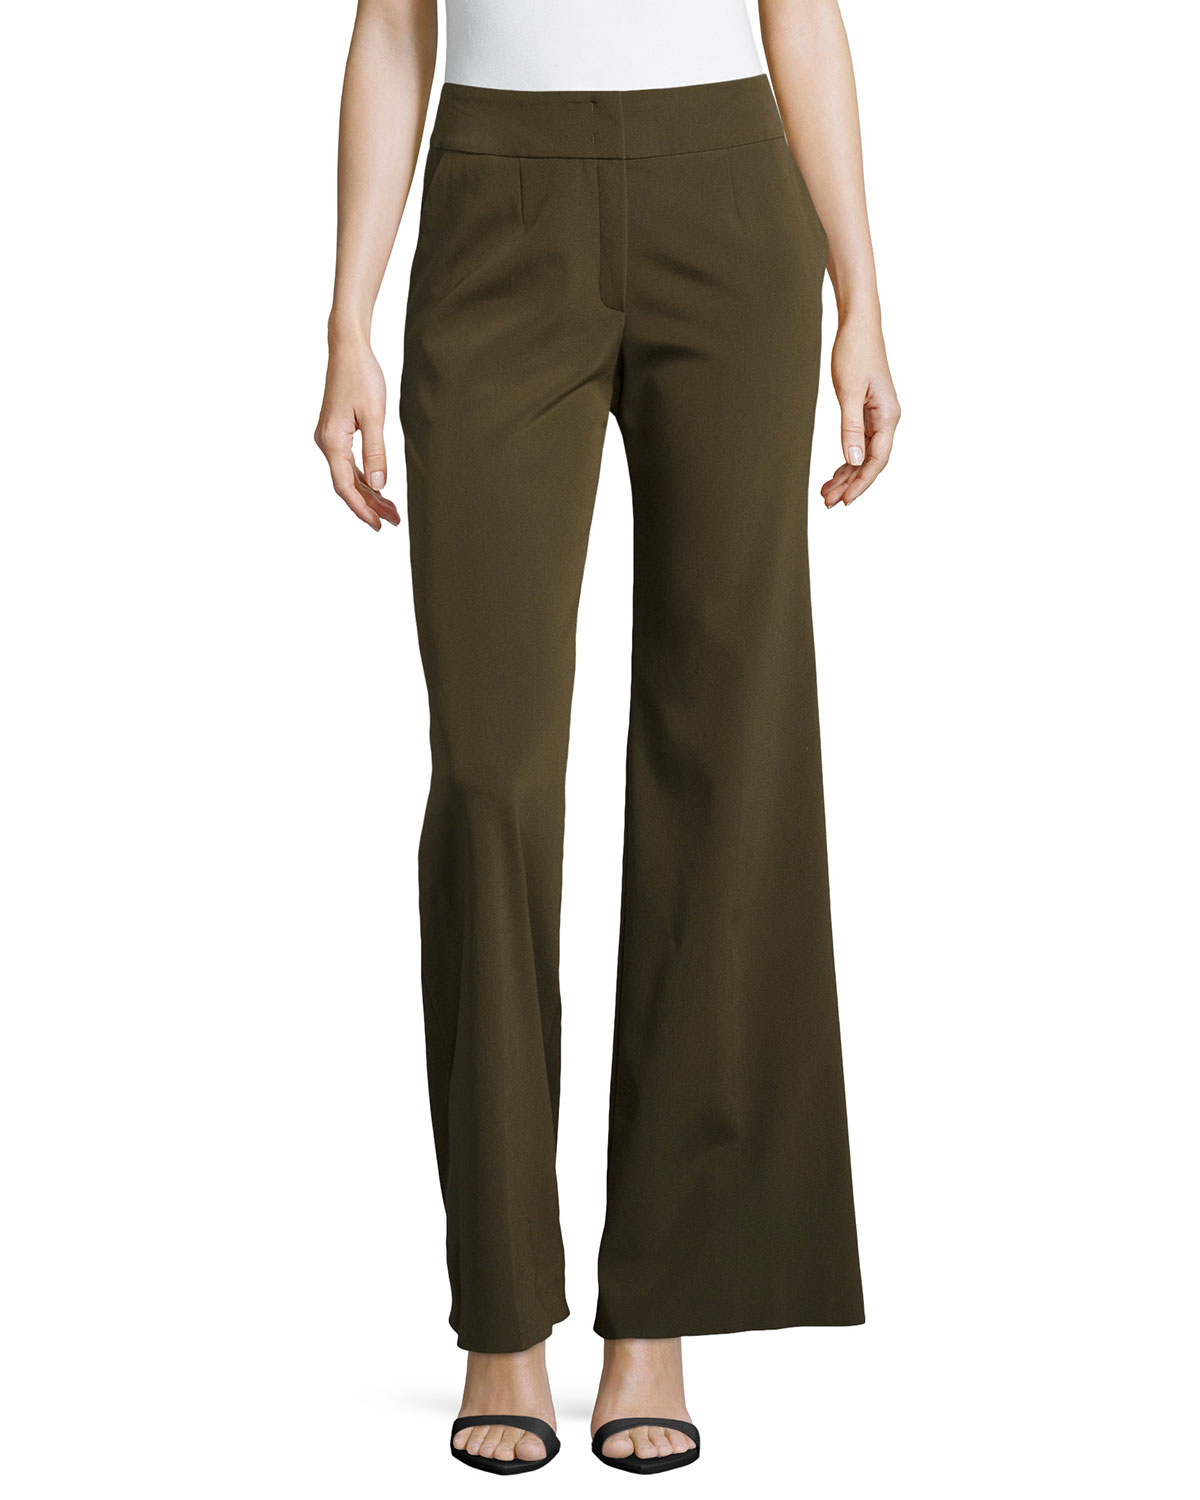 Explore wide-leg dress pants, straight-leg pants, pinstripes and more. Skinny cropped pants offer classic style, perfect with ballet flats or pumps. Cozy women's sweatpants and lounge pants can help you relax at home.